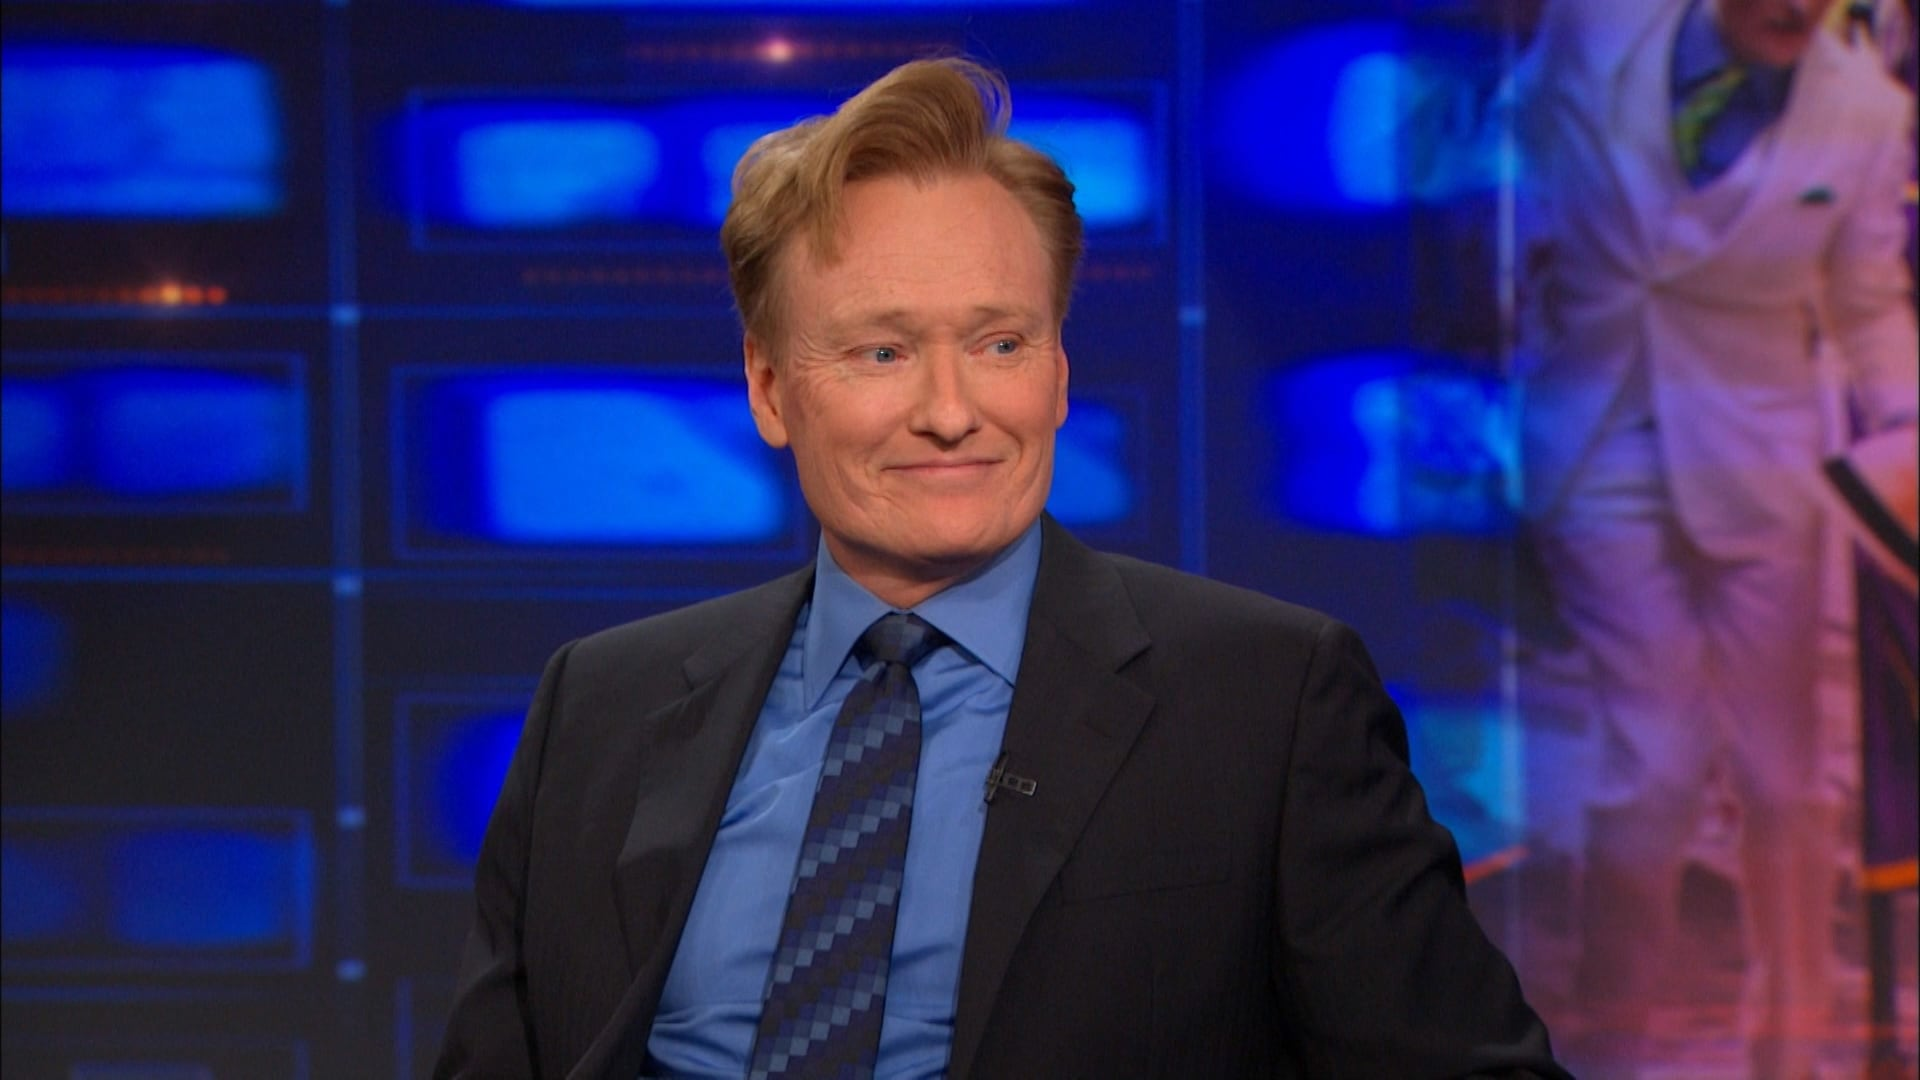 The Daily Show with Trevor Noah Season 20 :Episode 66  Conan O'Brien